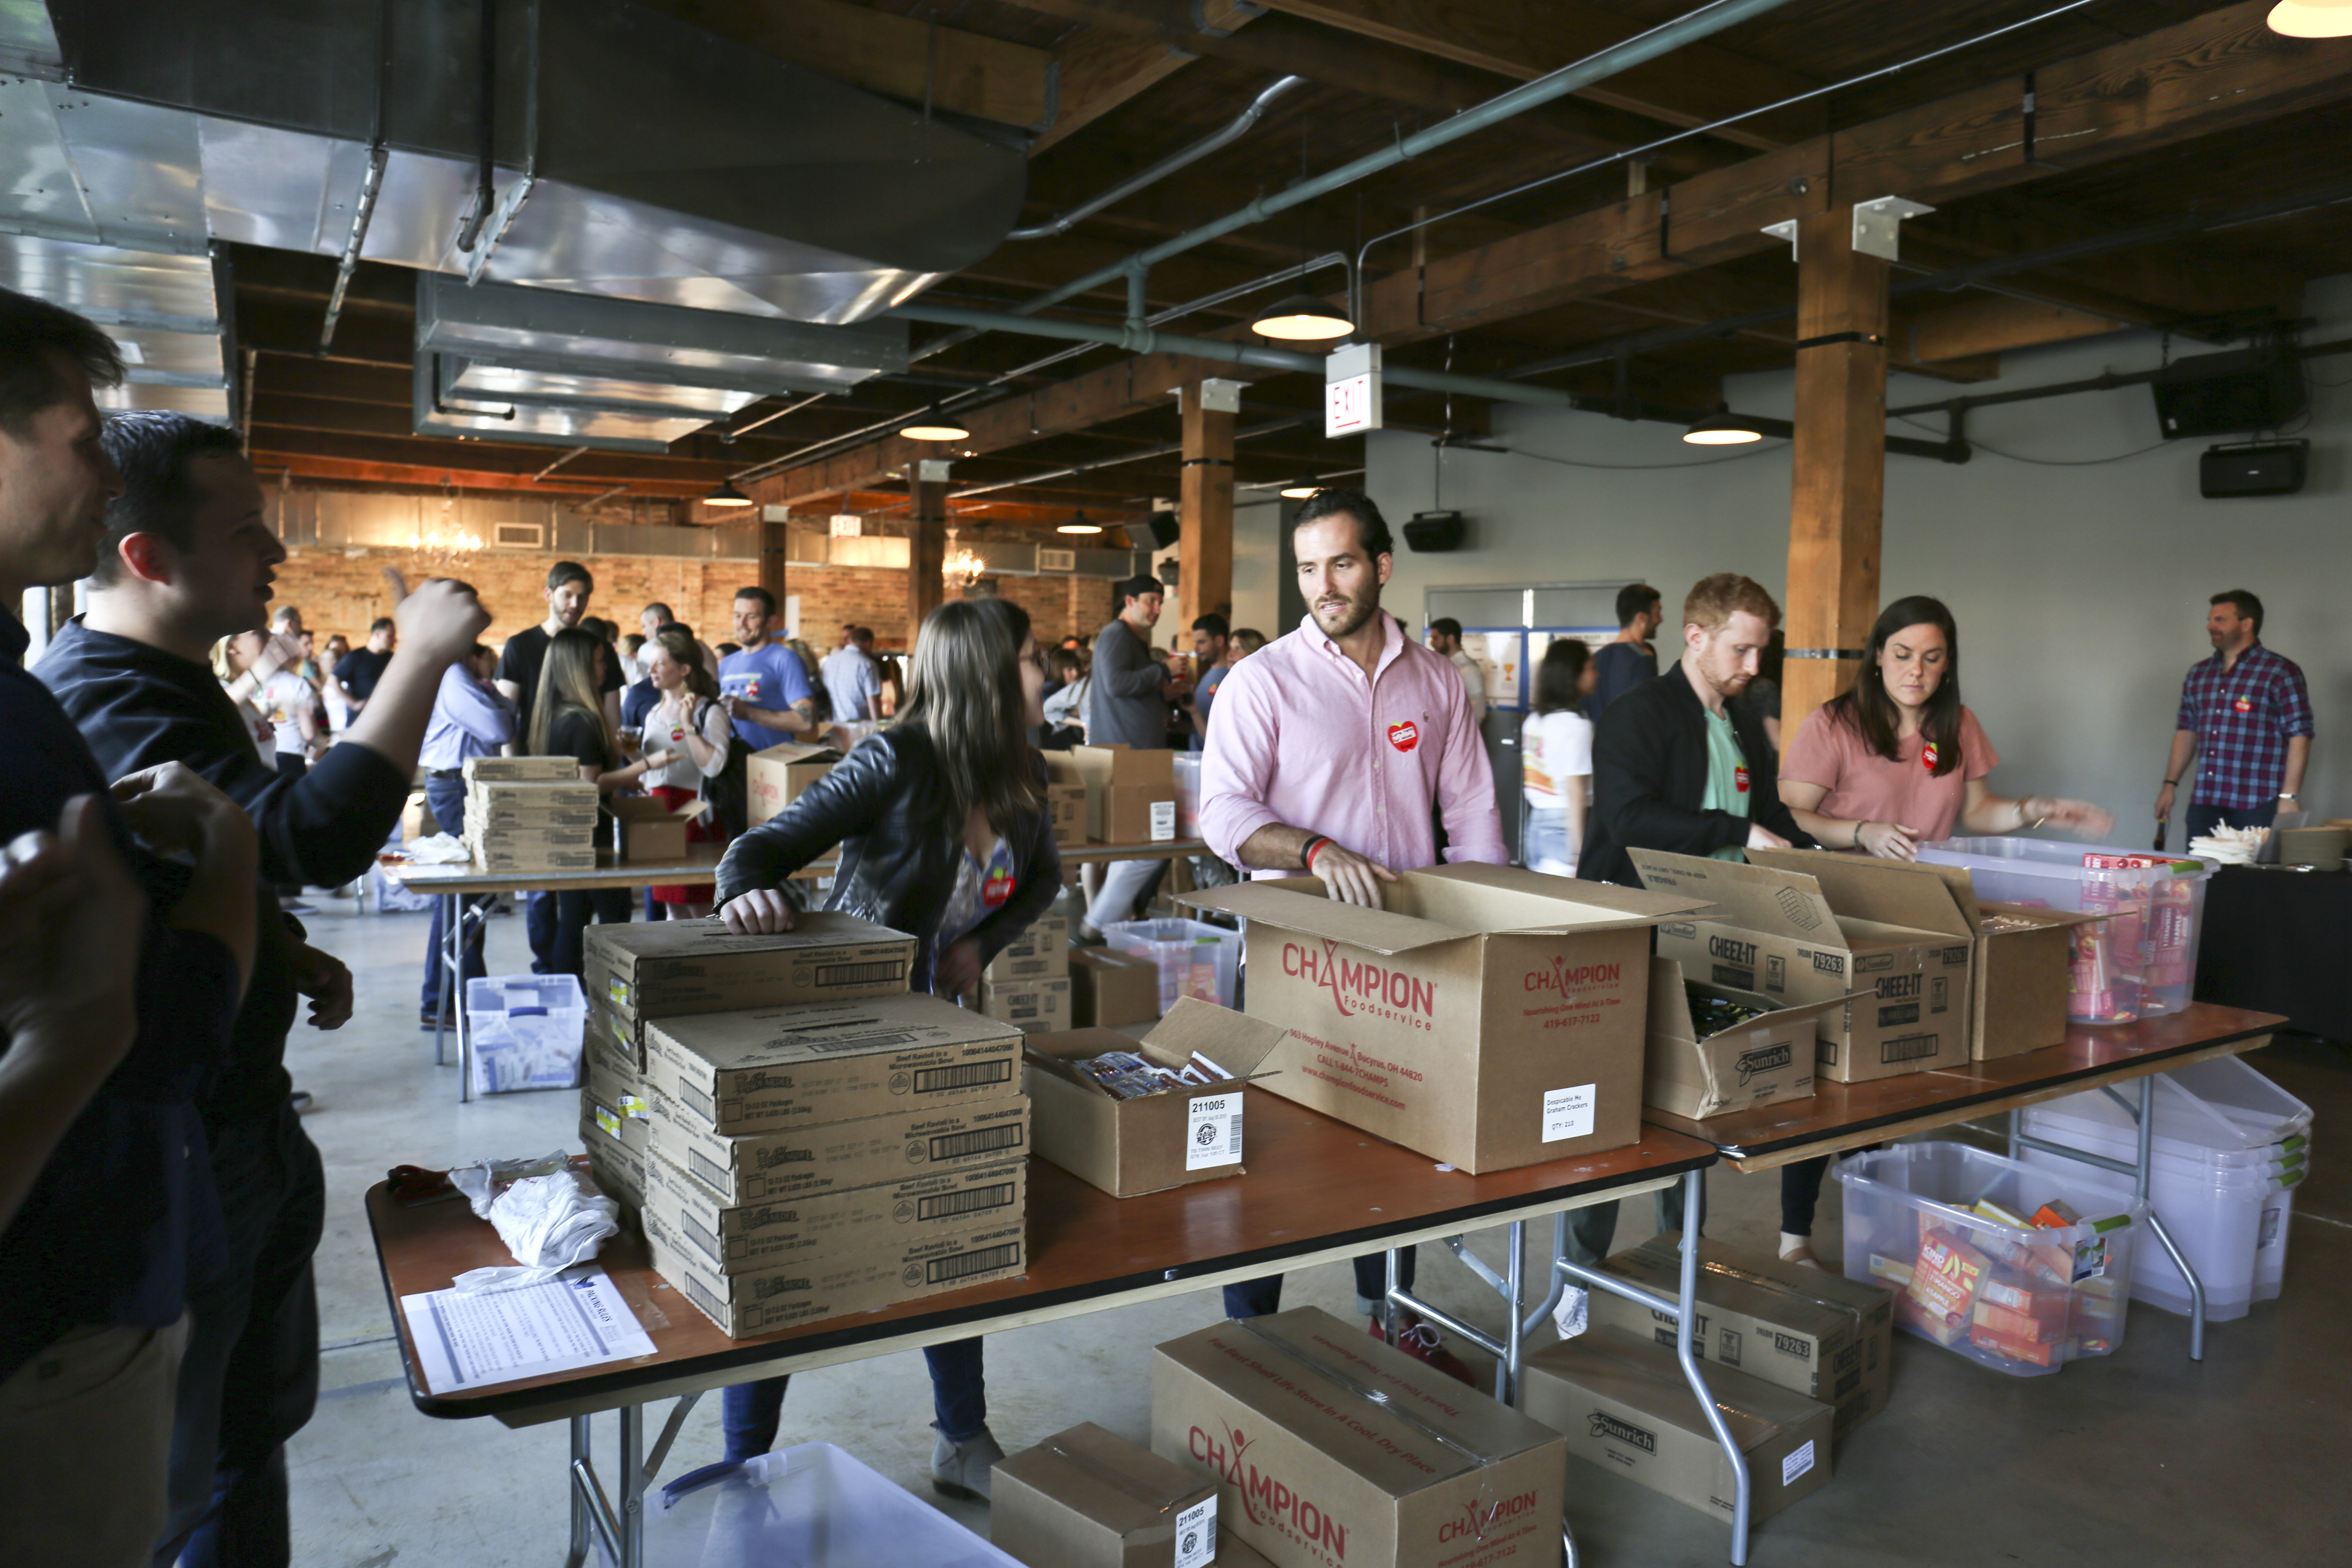 Teams Pack 1,800 Bags of Food at The Race to Feed Chicago